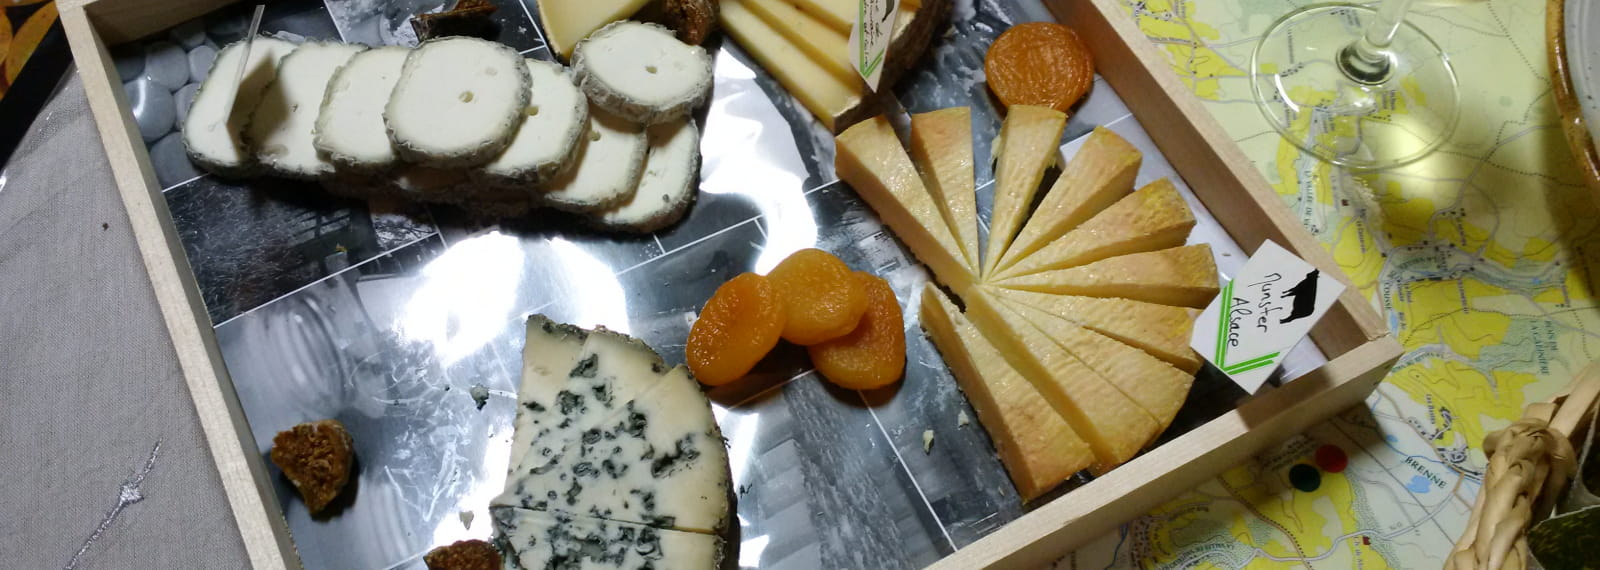 vins&fromages-avril-2019